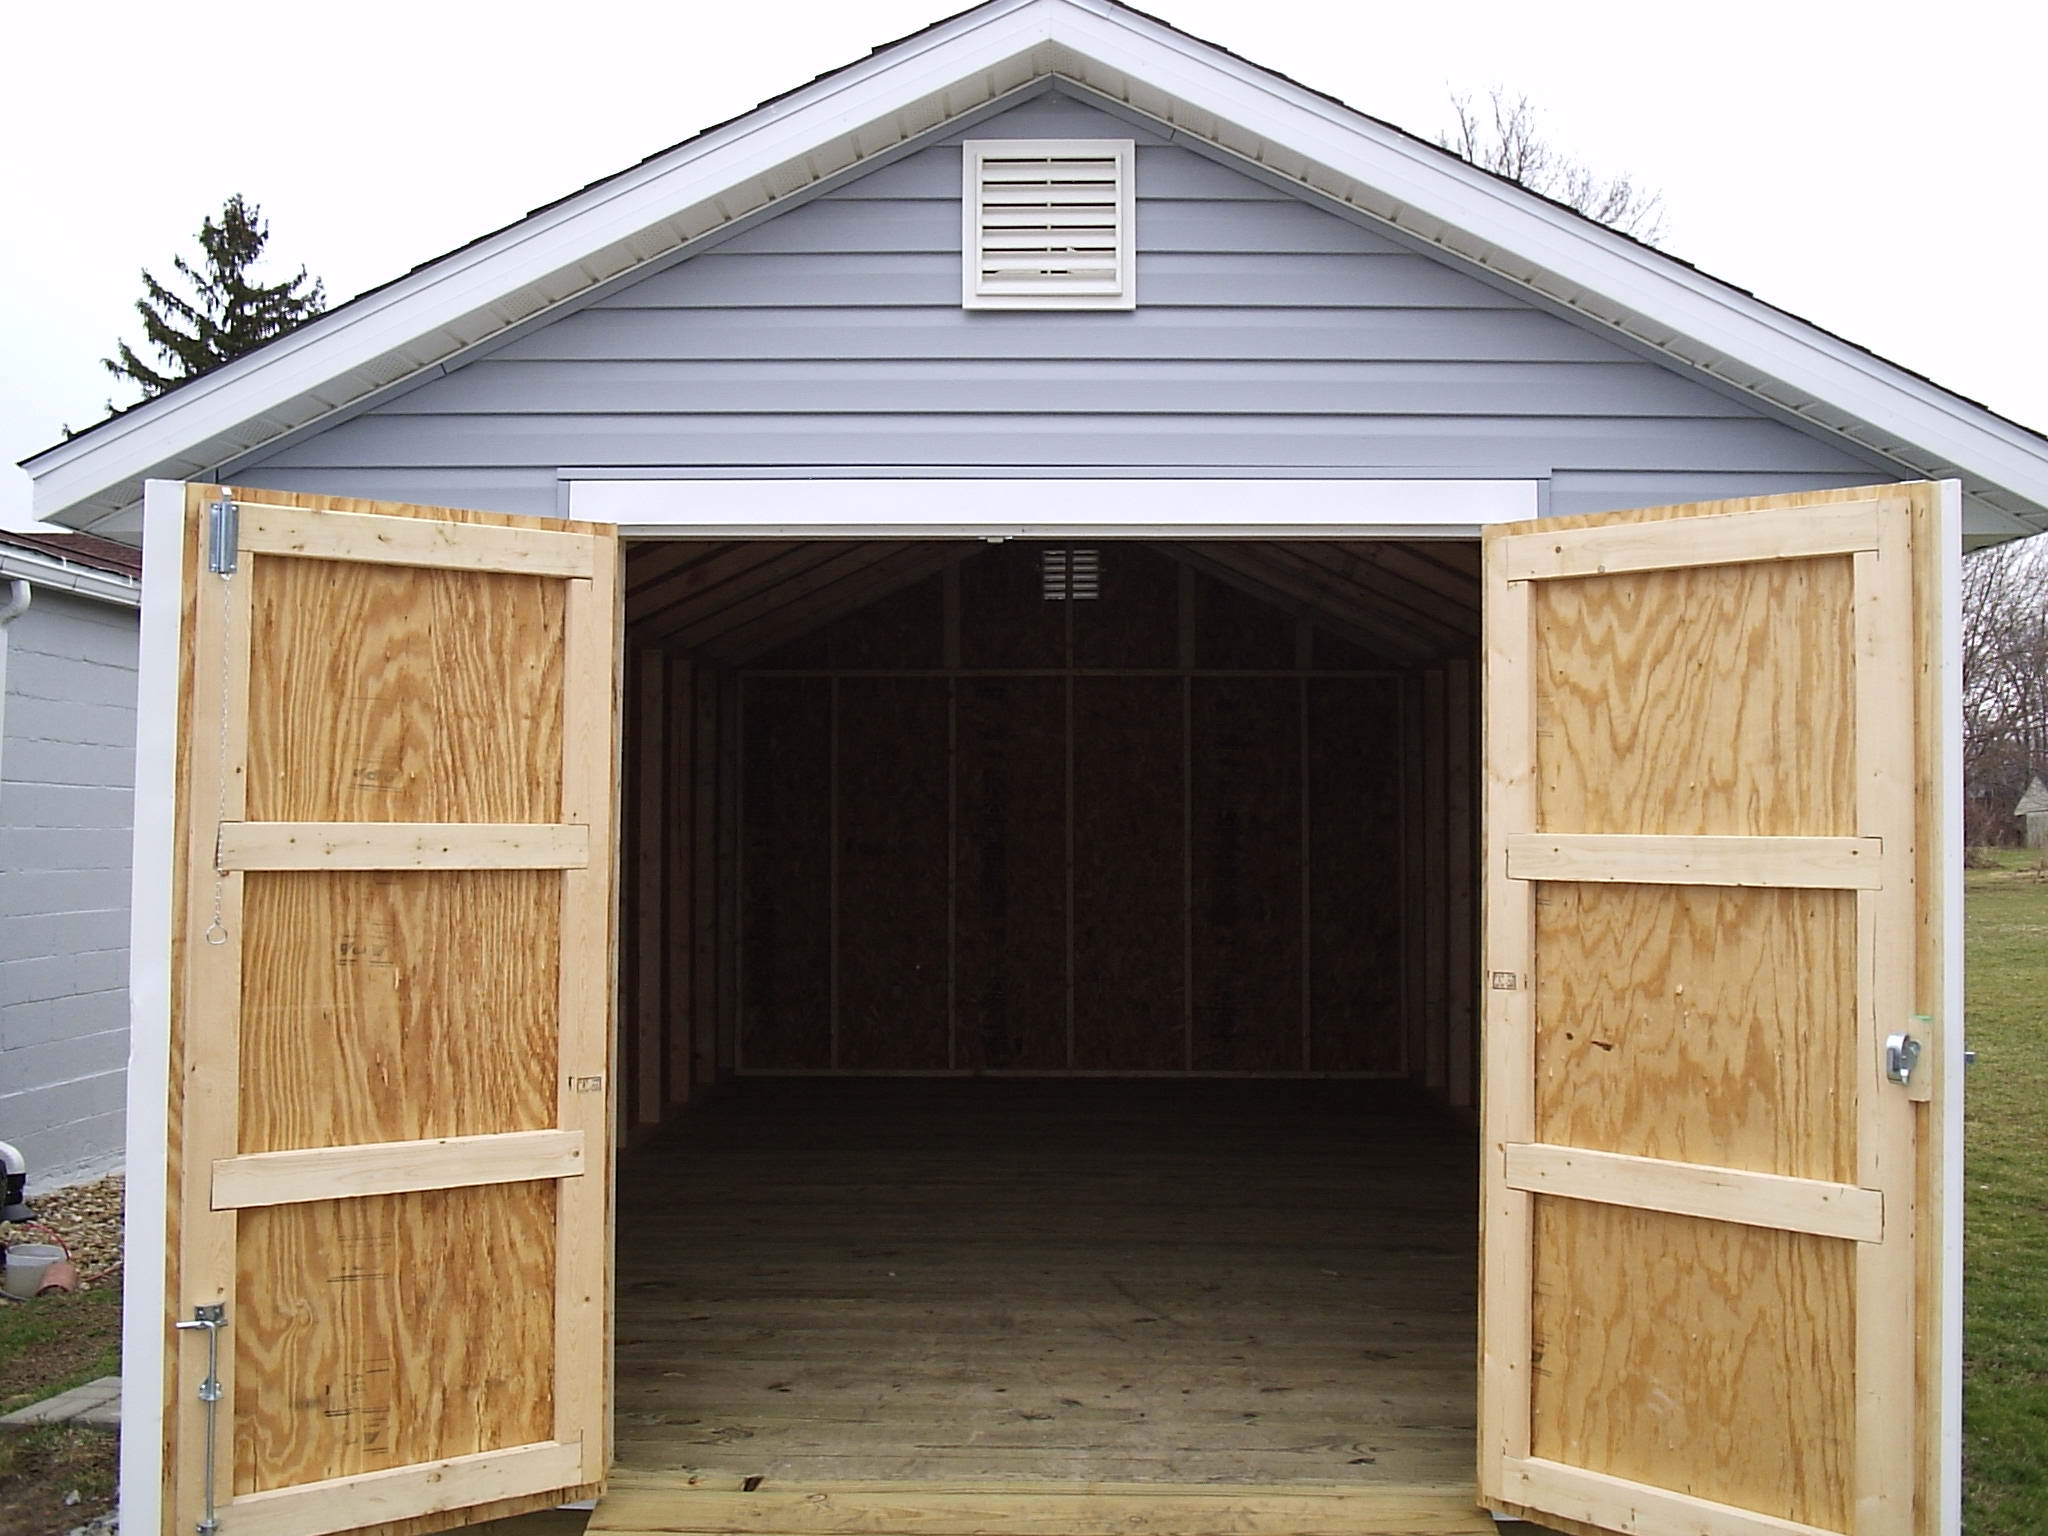 ... Wood Shed Doors For Your Back Yard Storage Shed | Shed Blueprints